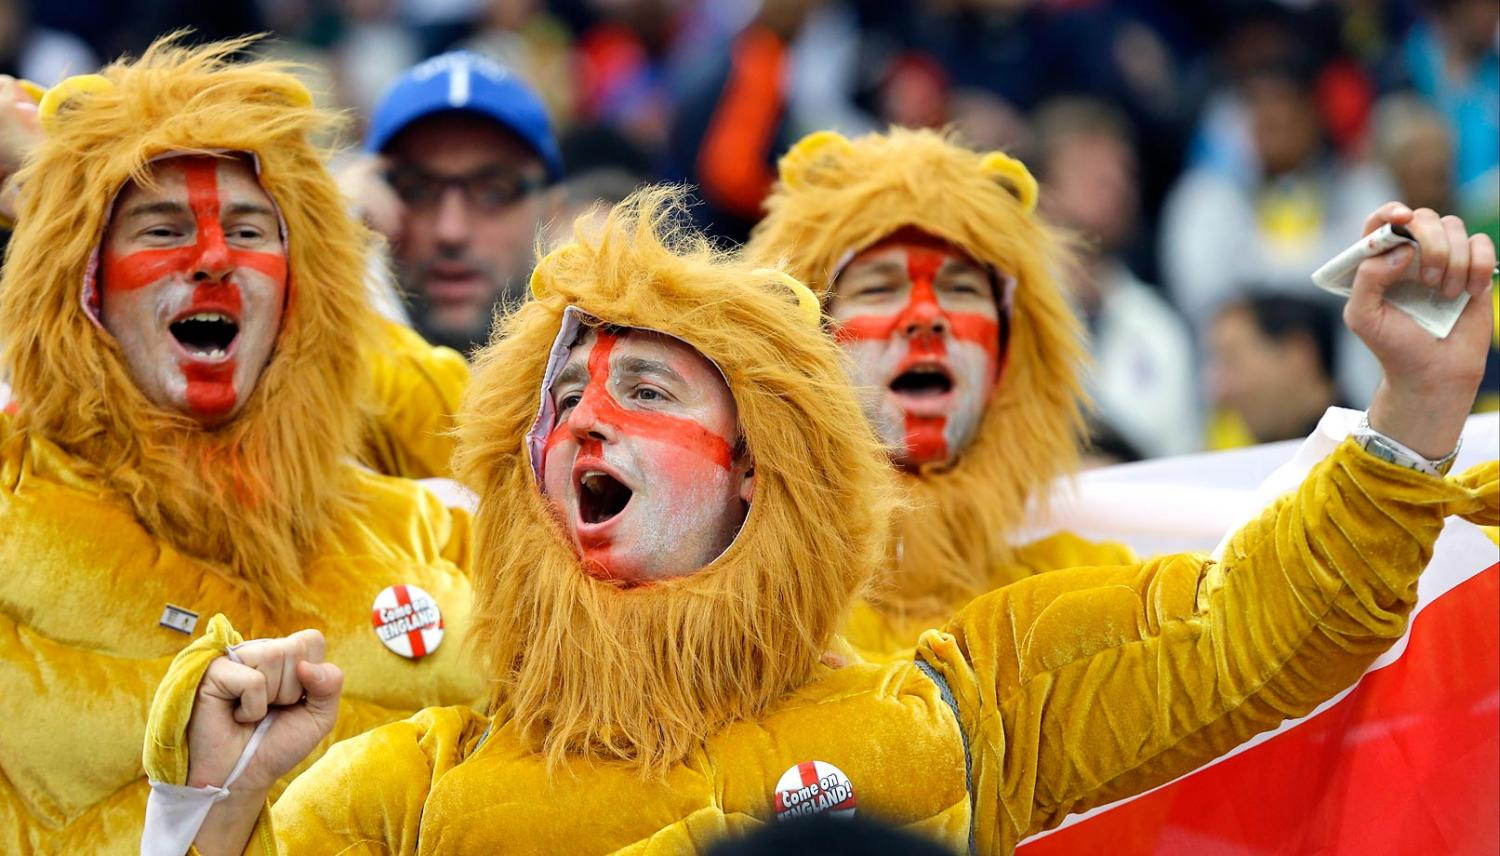 england three lions - craziest fans at 2014 fifa world cup